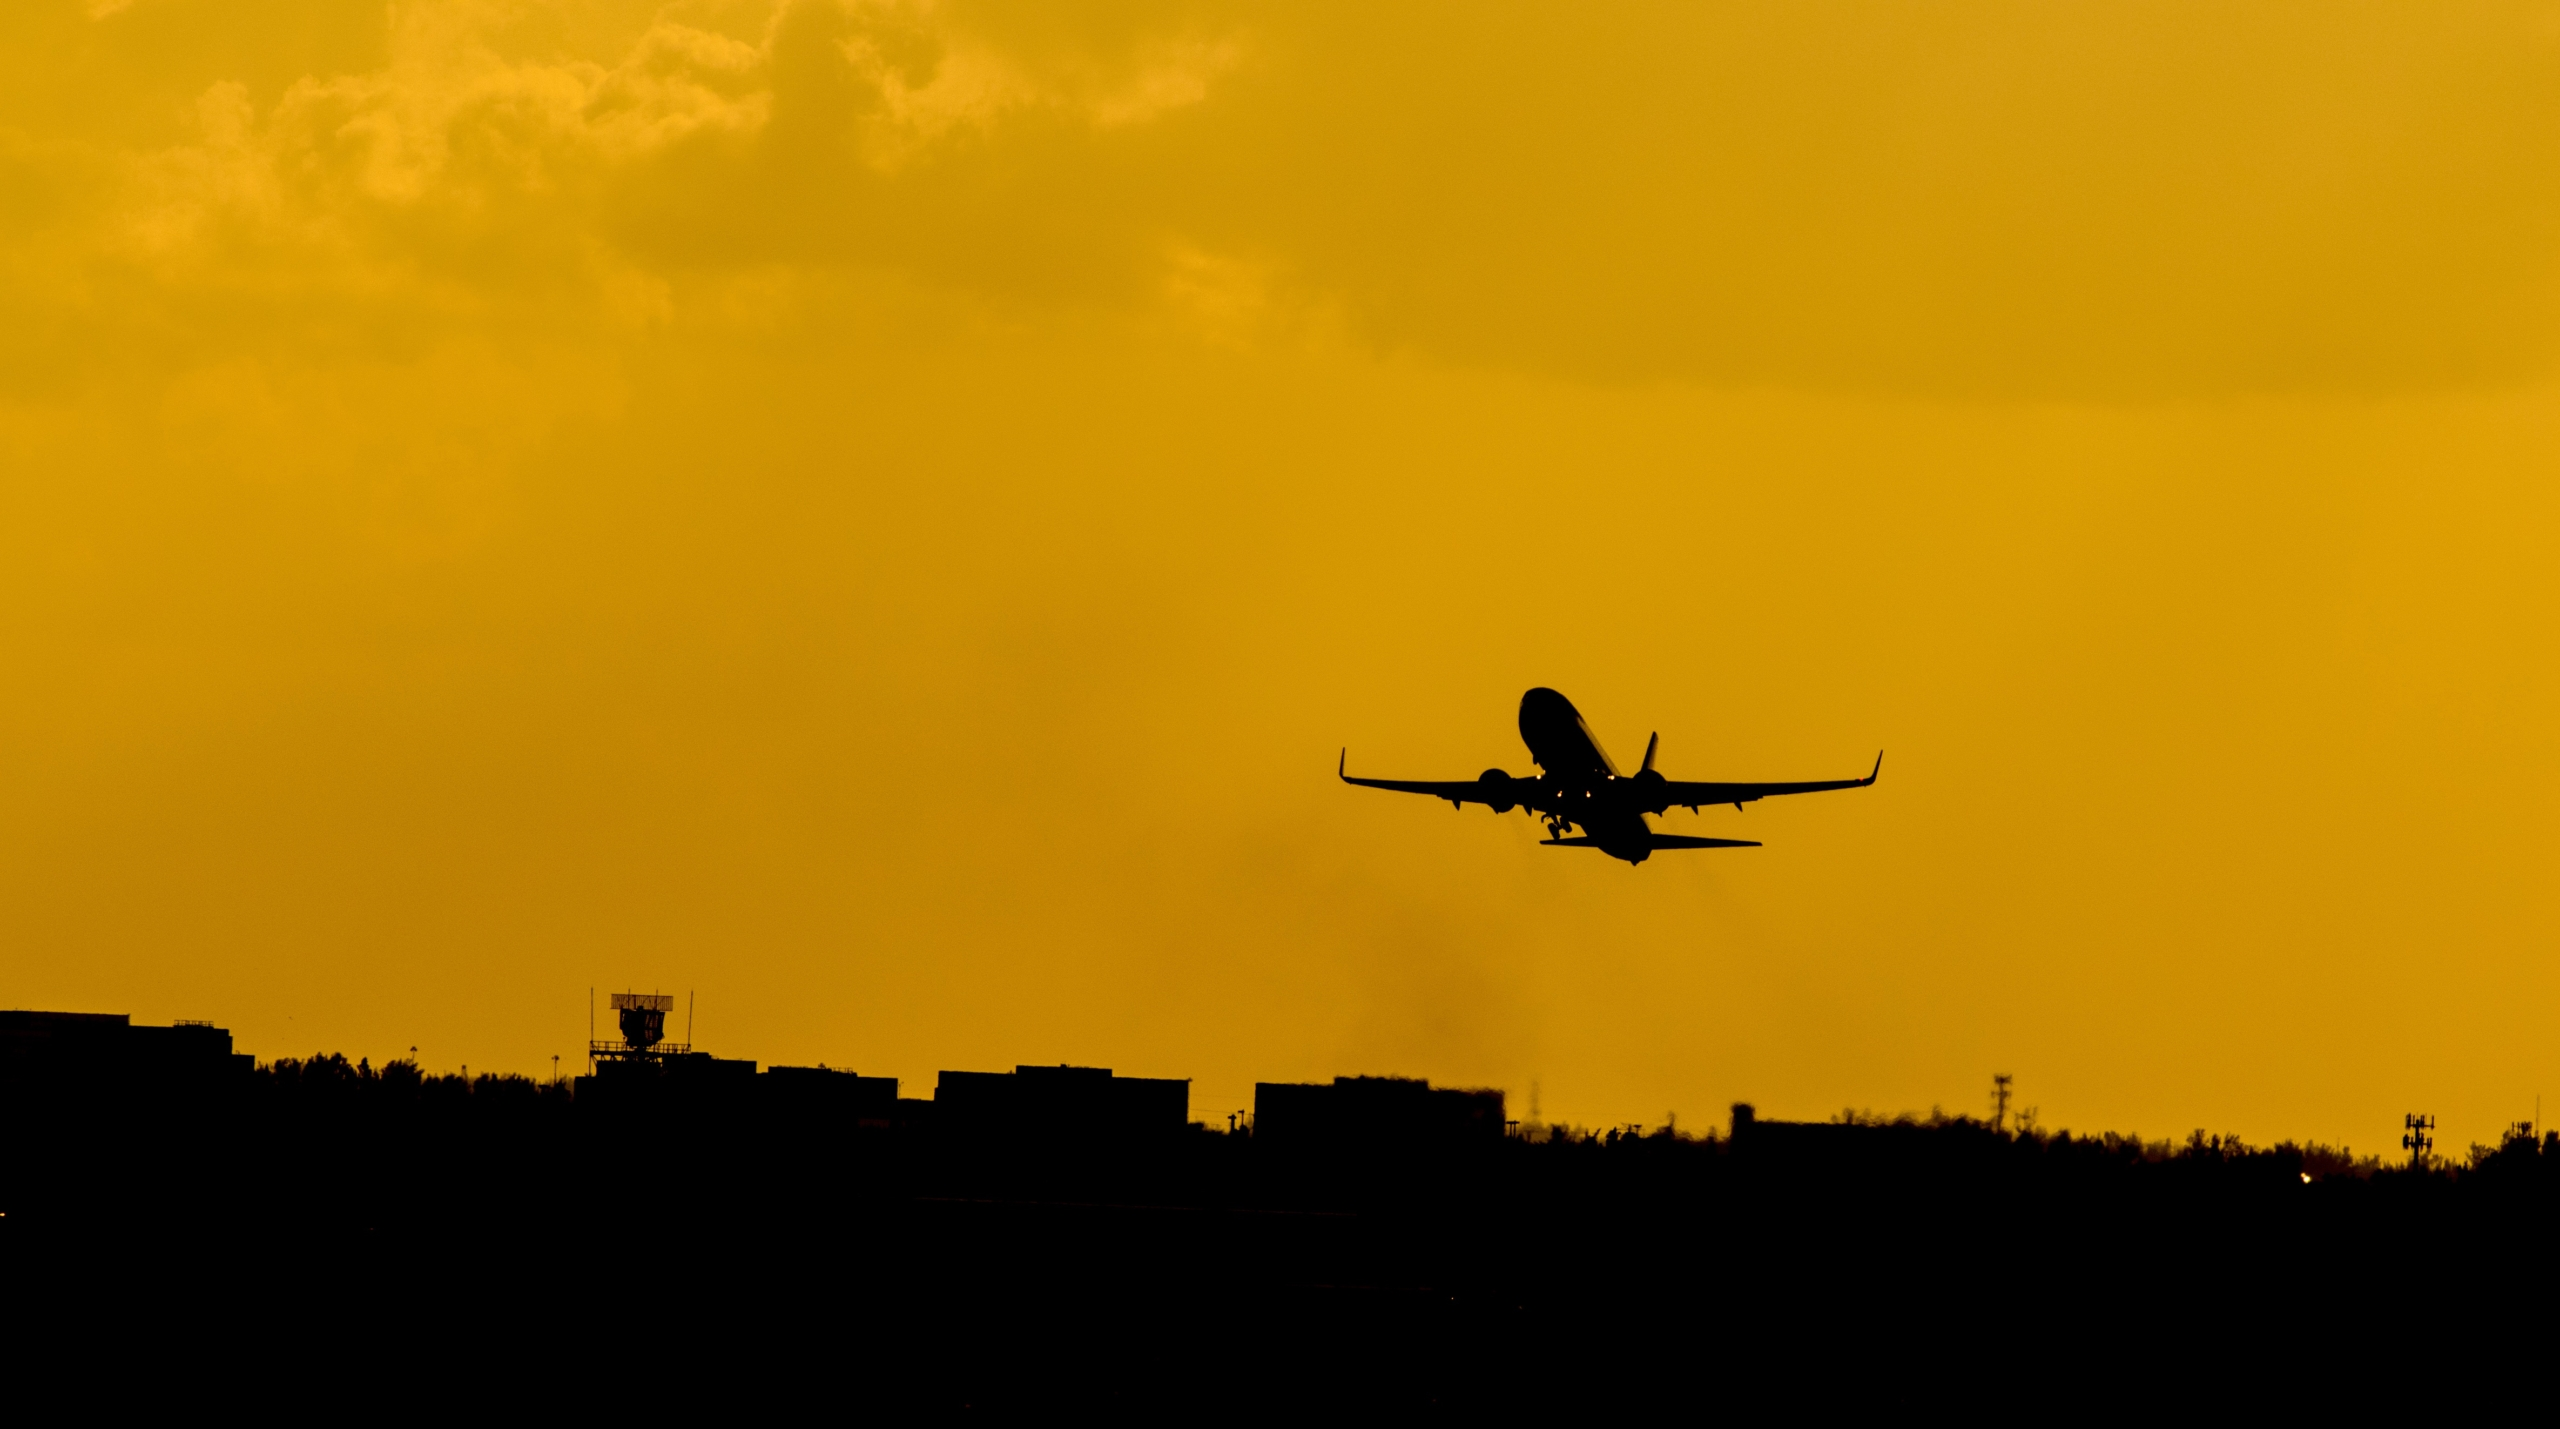 Aircraft taking off from Miami airport